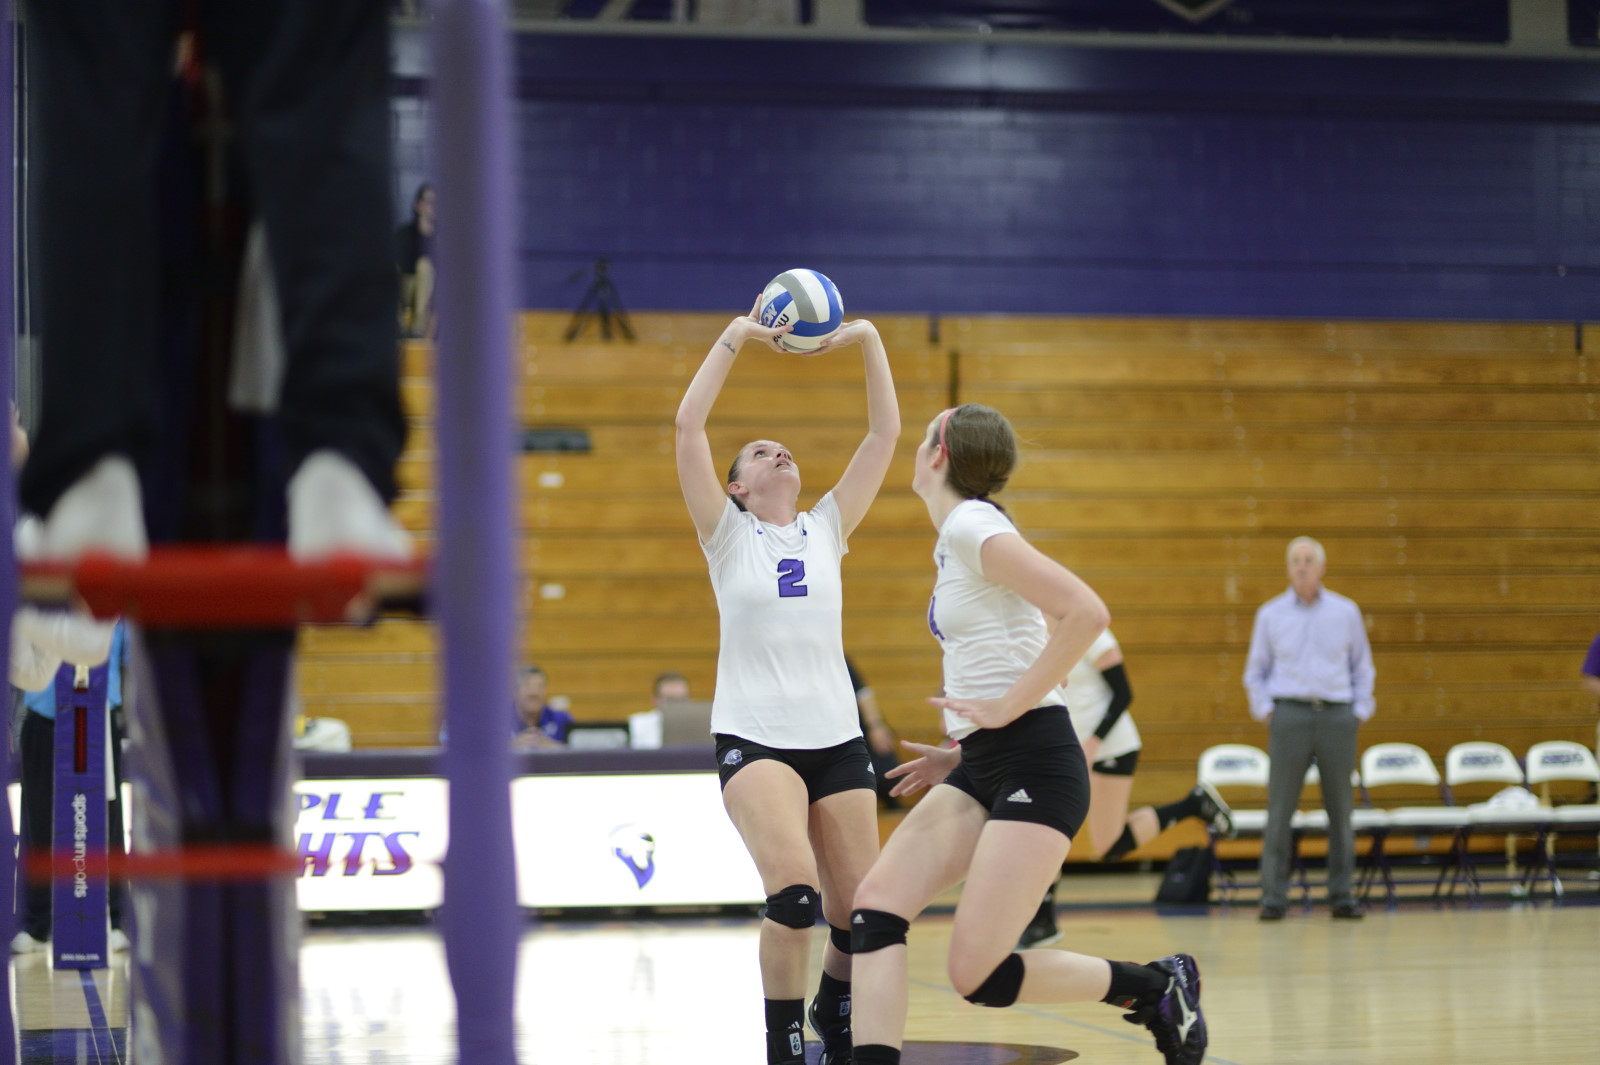 Bridgeport Sweeps Past St. Rose In Non-Conference Volleyball Action